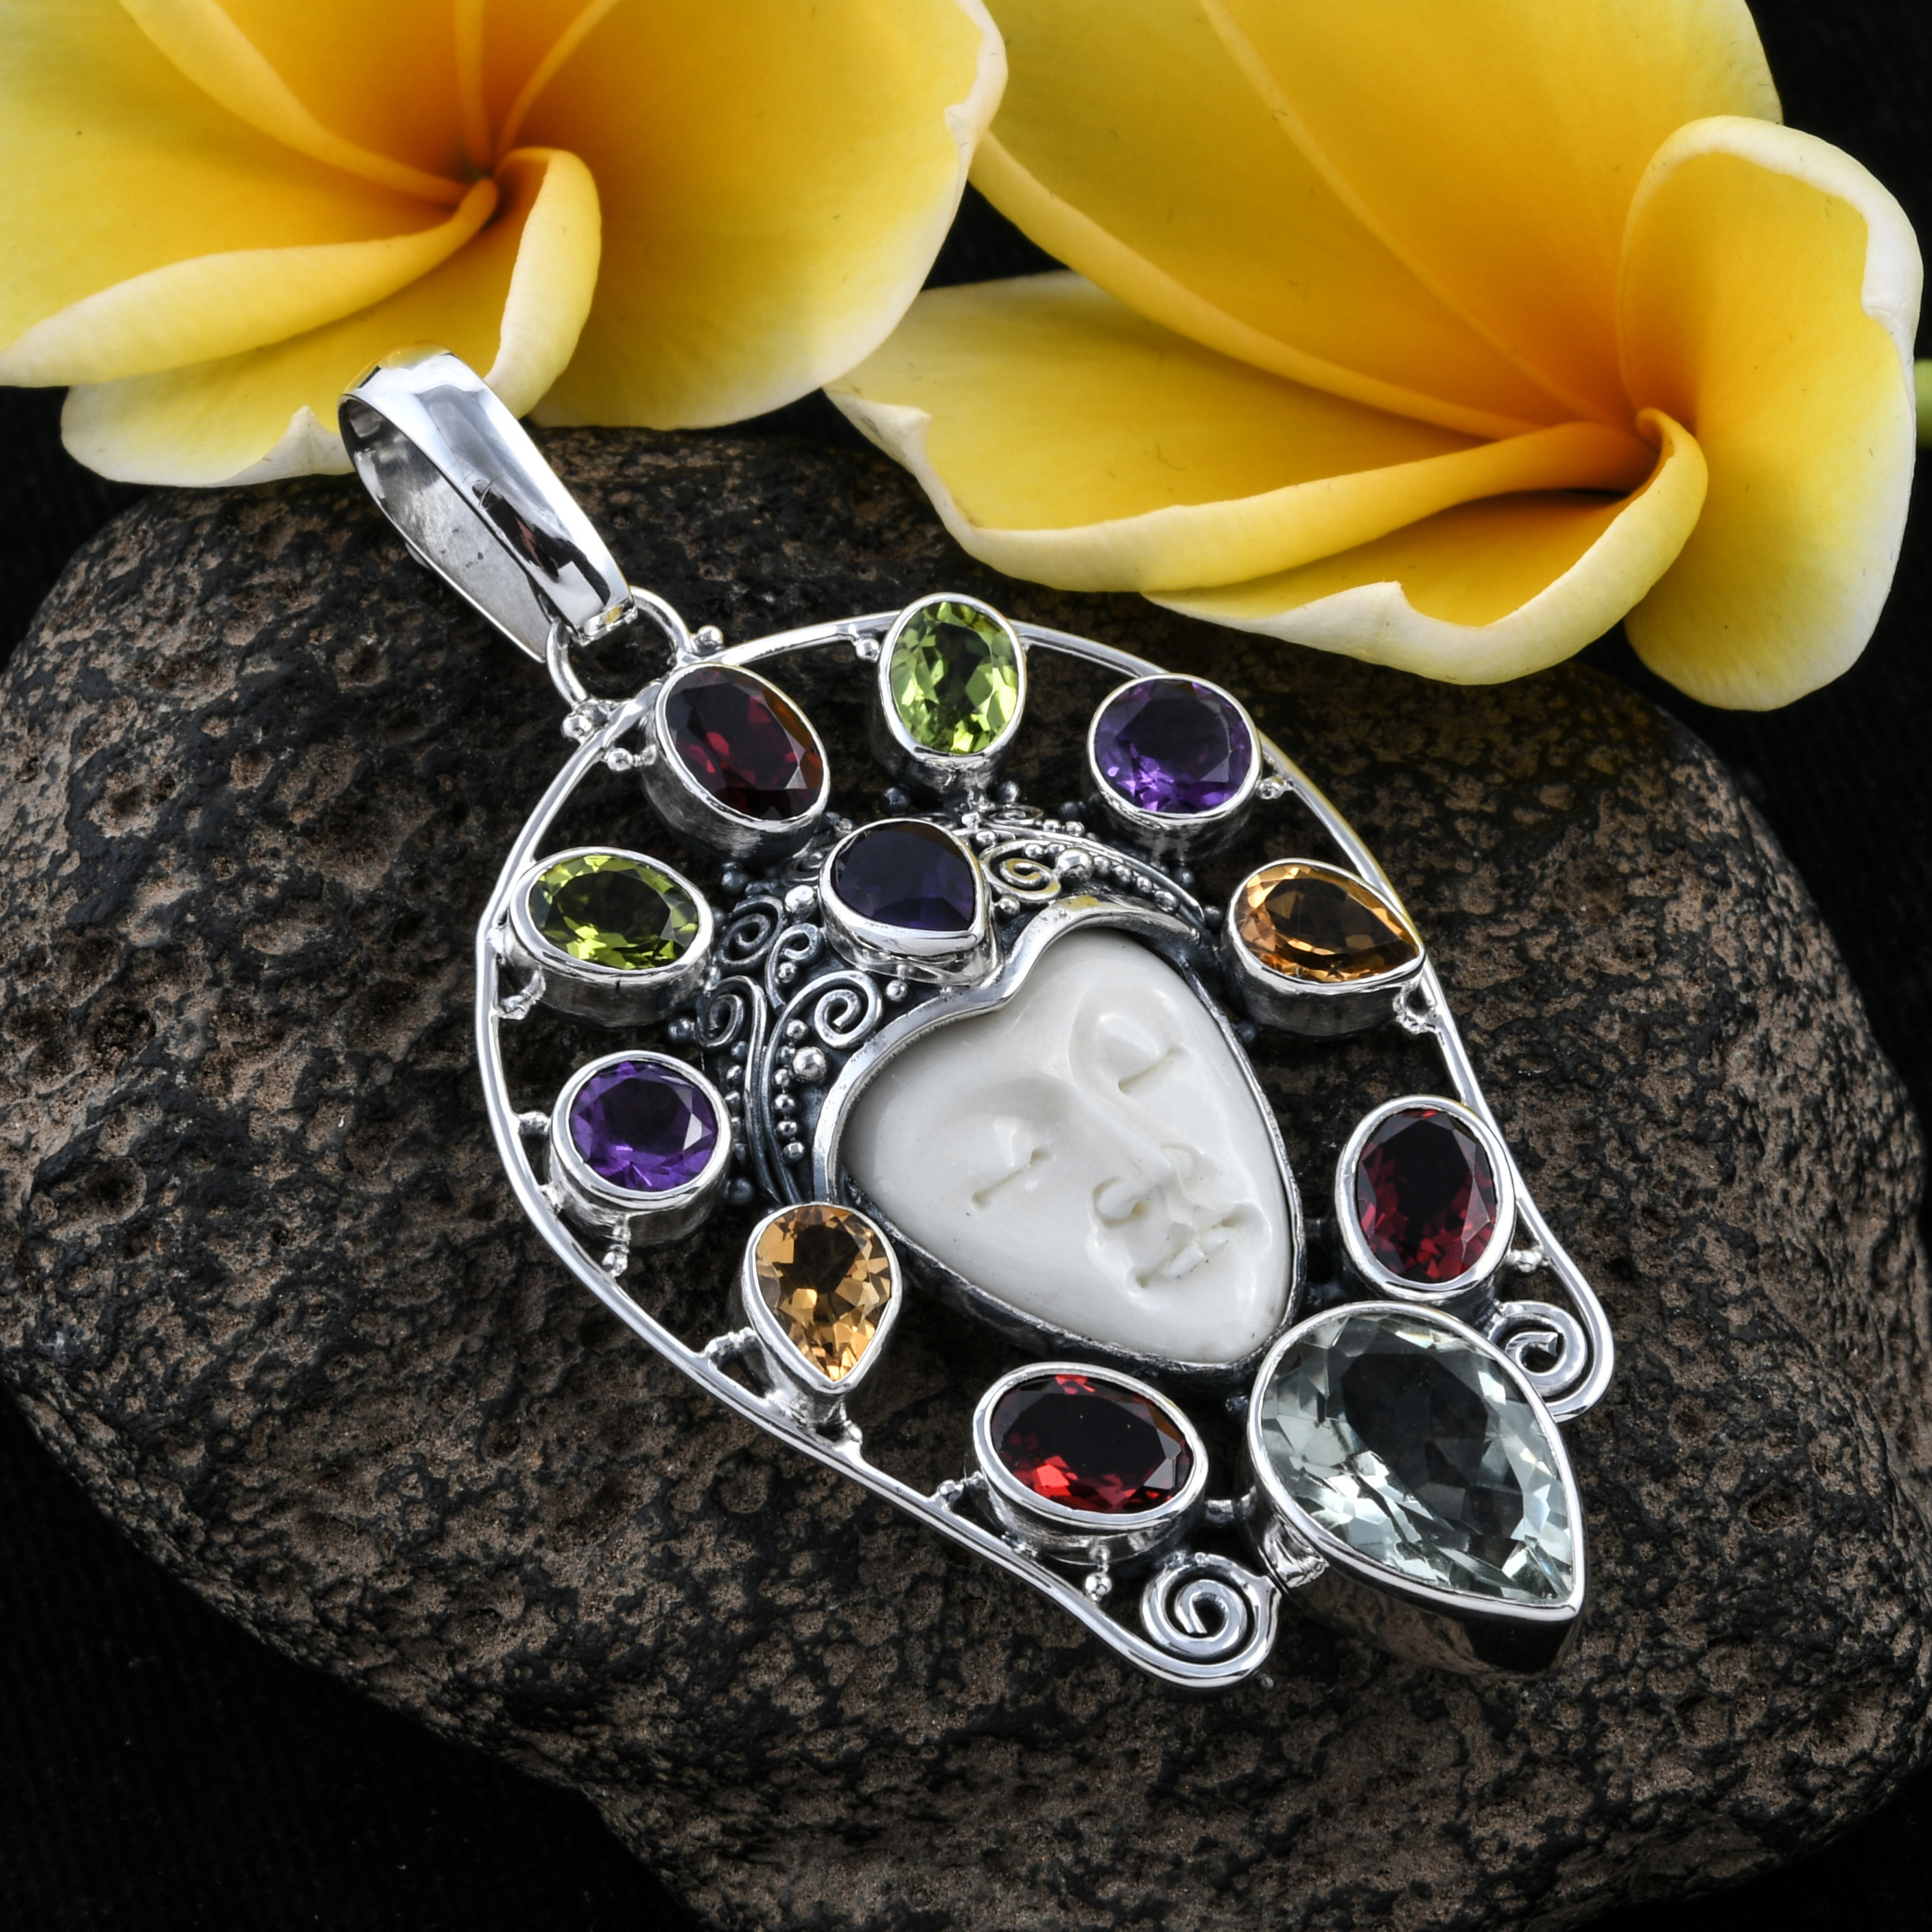 Jeweled Bali jewelry pendant with resting goddess face.